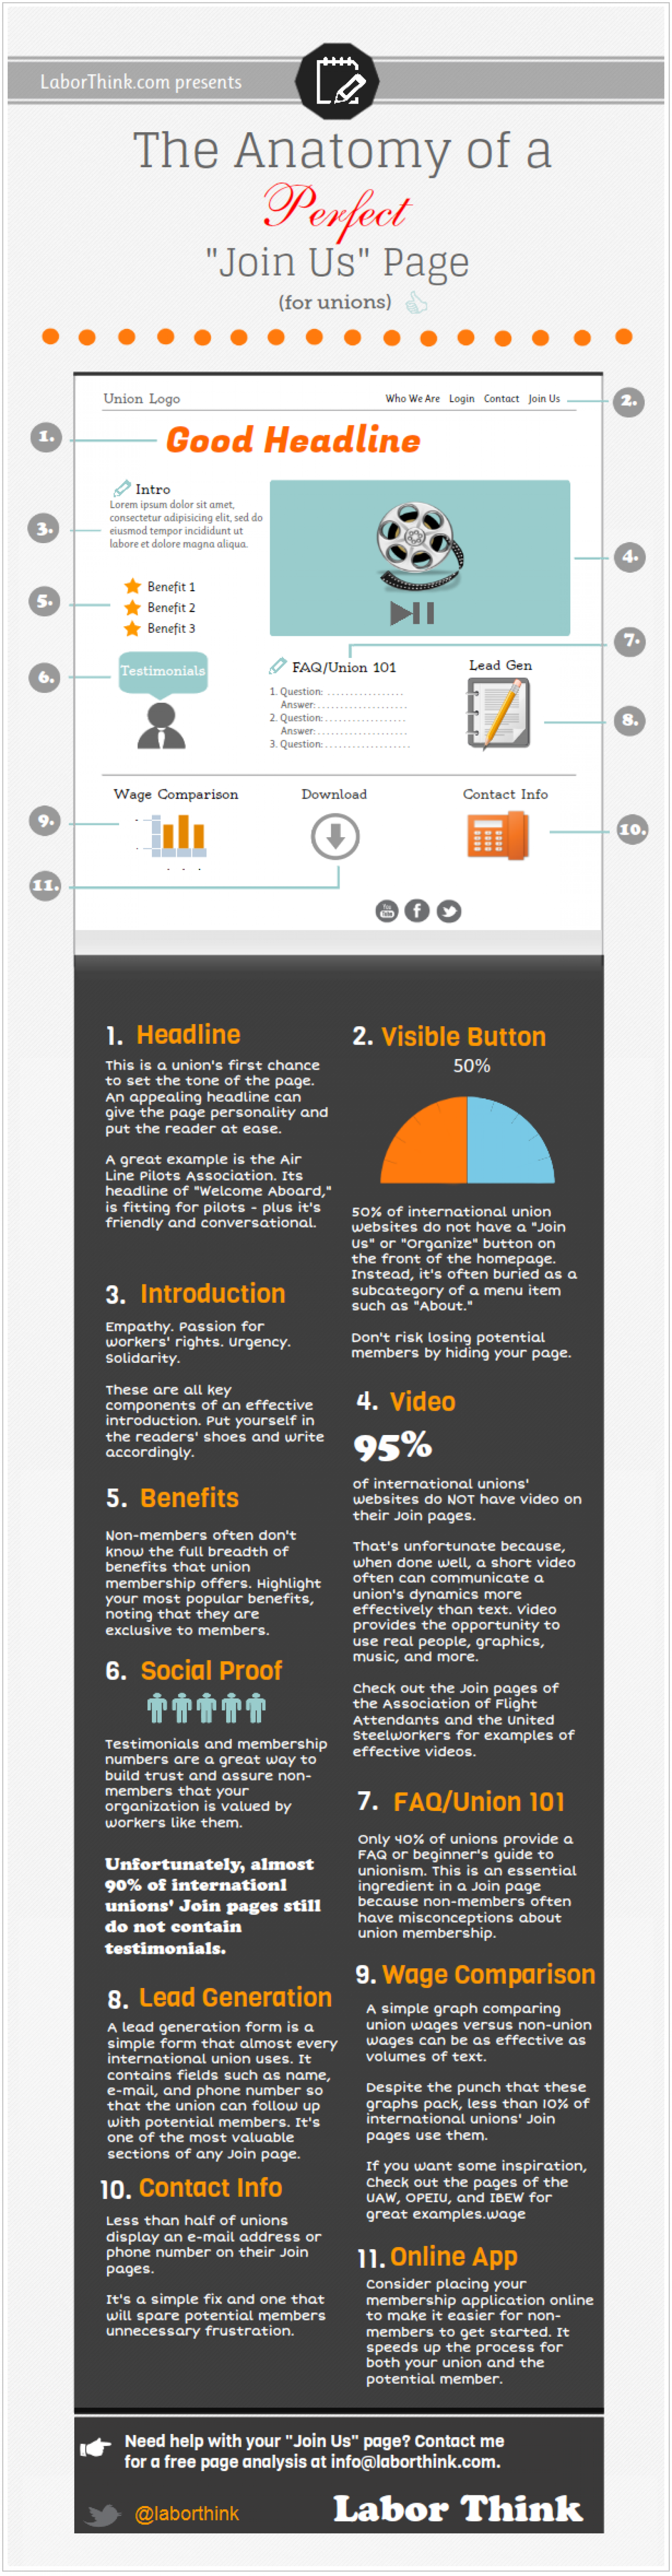 Anatomy of the Perfect Join Page Infographic